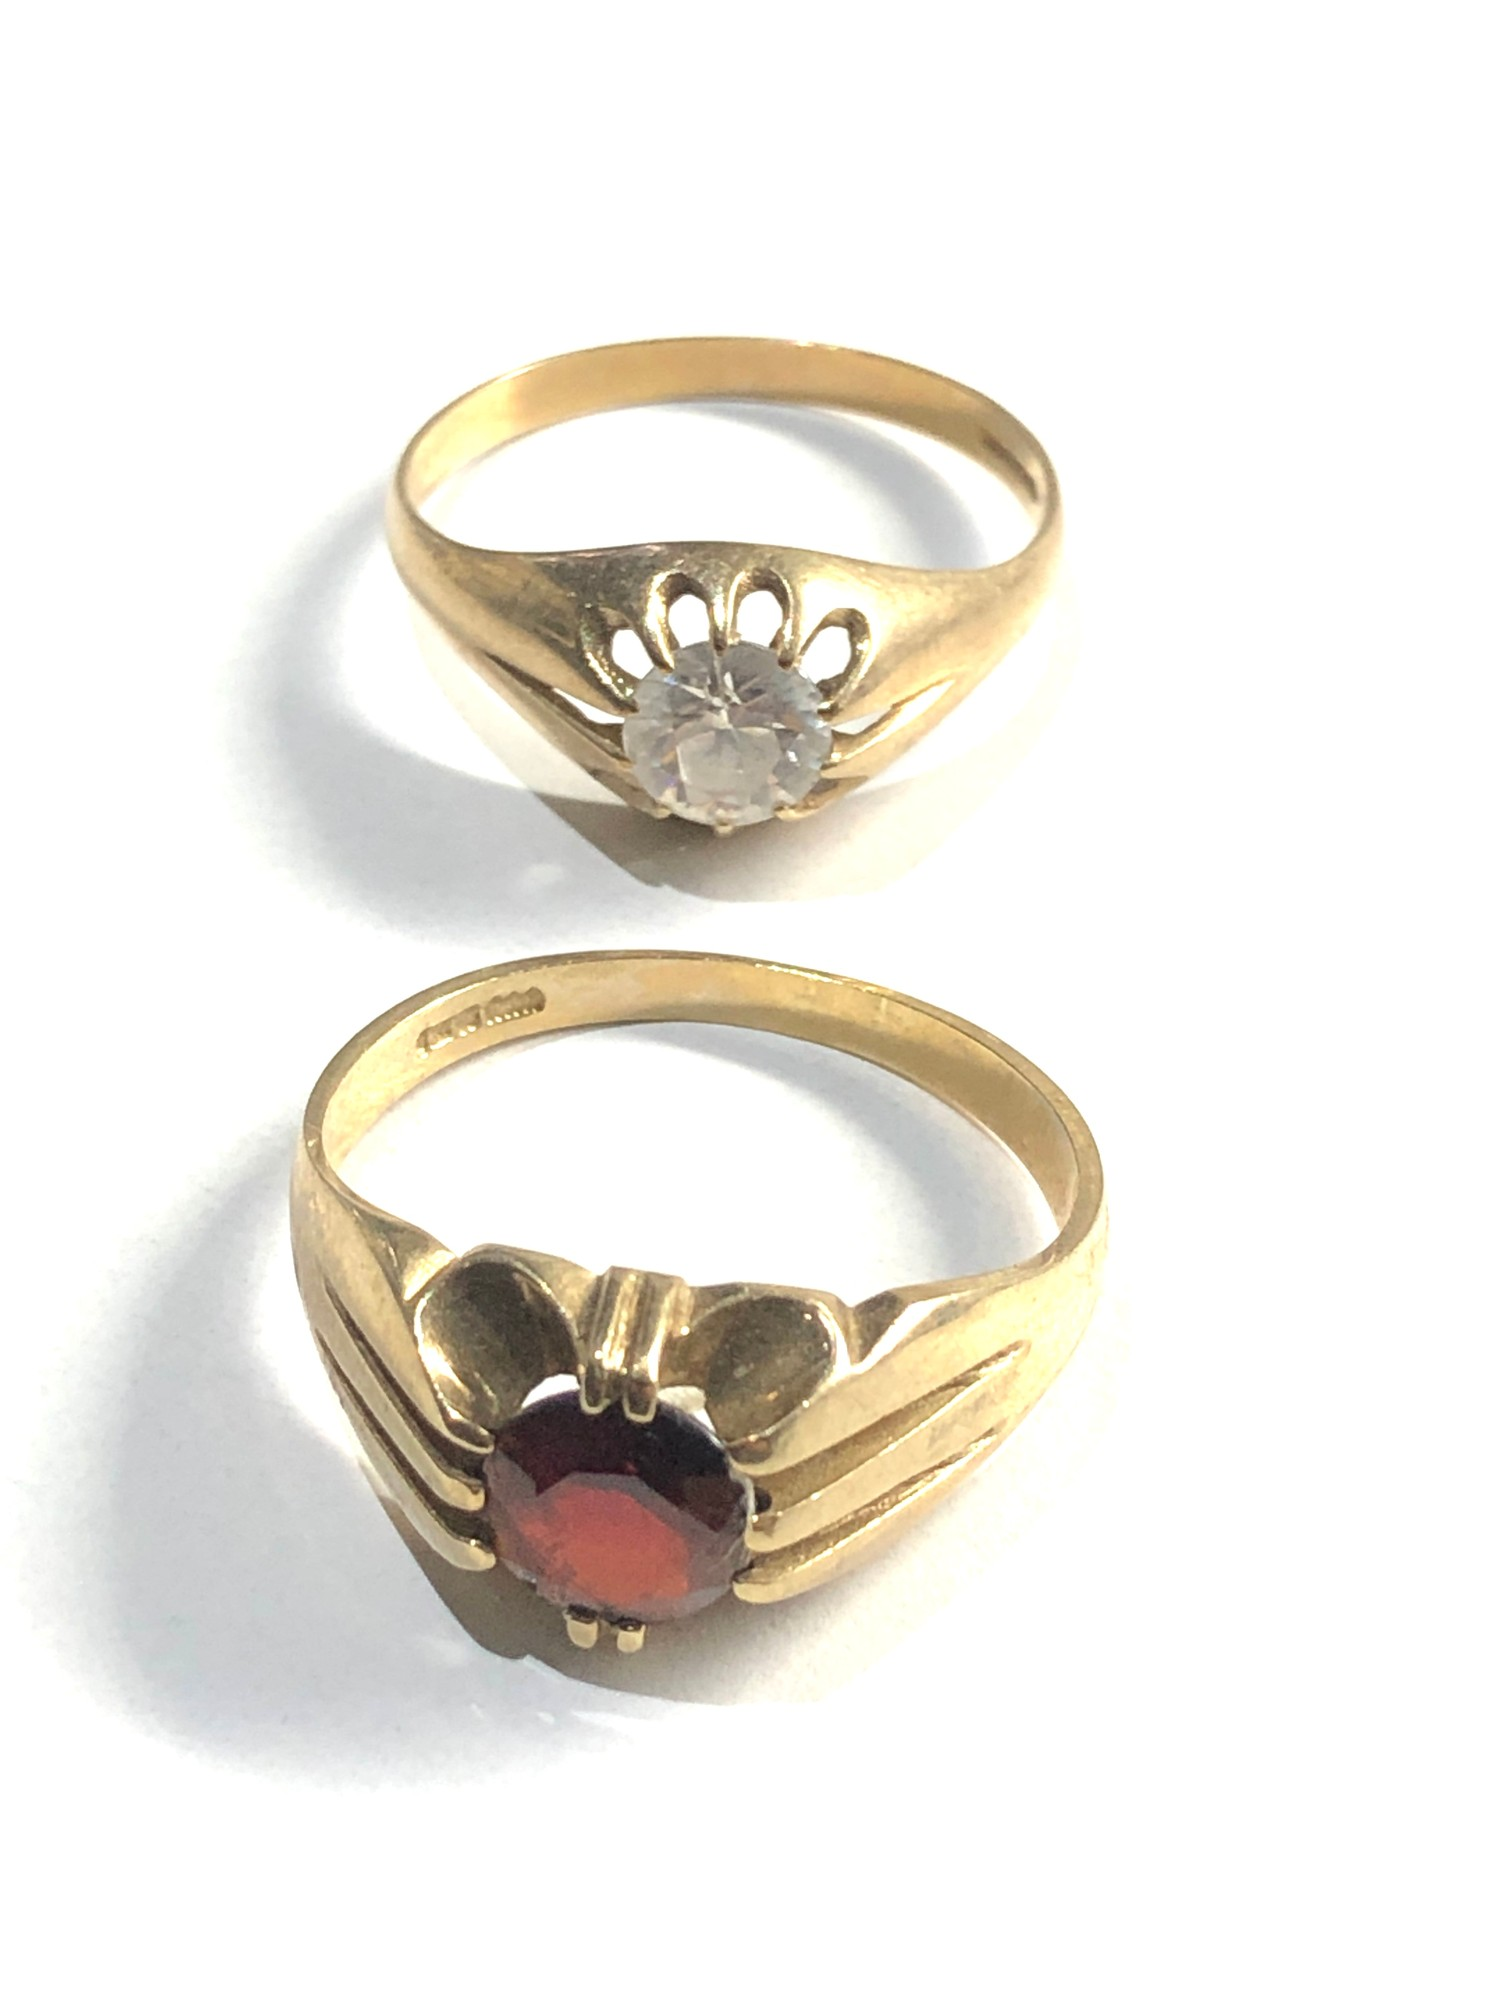 2 x 9ct gold gypsy rings 5.6g